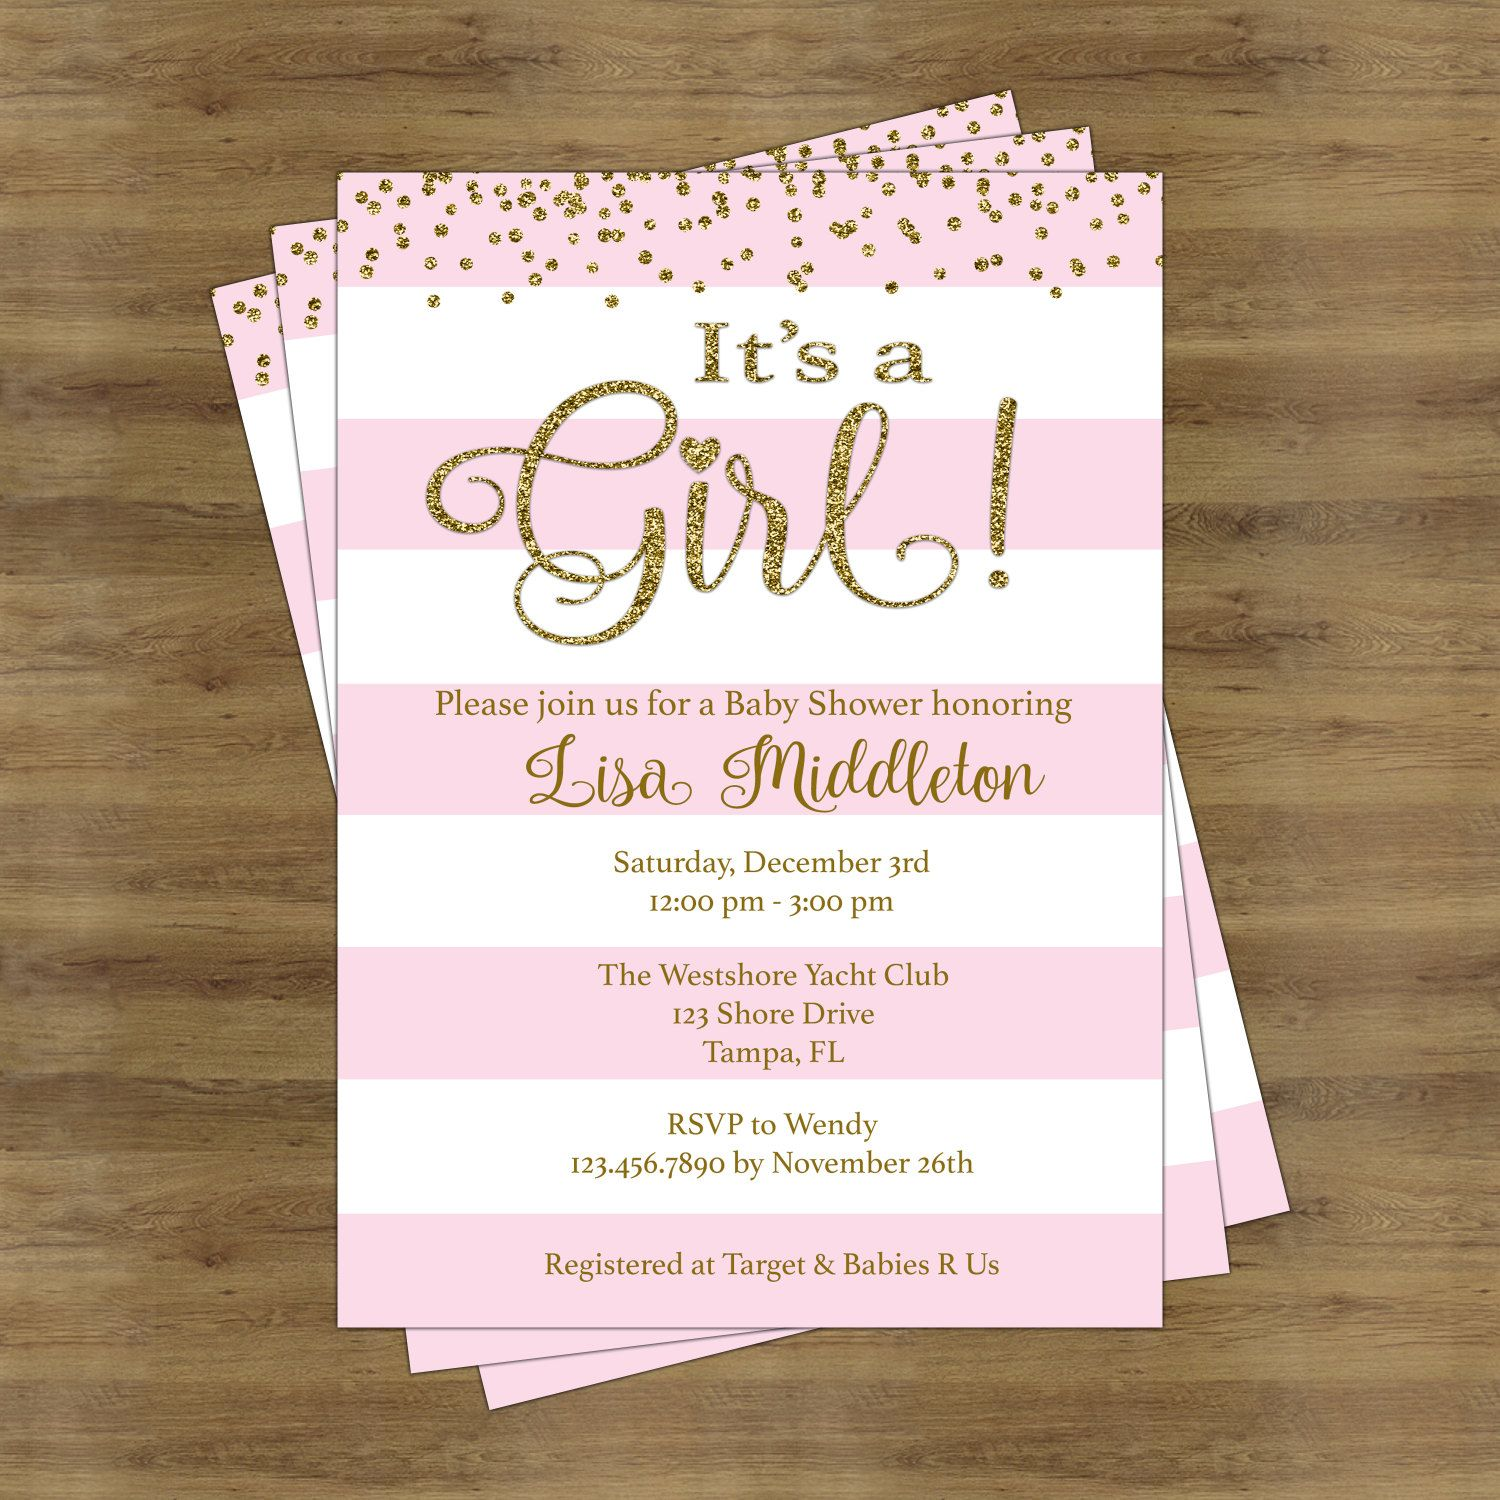 Pink and gold baby shower invites its a girl baby shower invitation pink and gold baby shower invites its a girl baby shower invitation girl baby shower invitation for a girl gold and pink invitations by sophisticatedswan filmwisefo